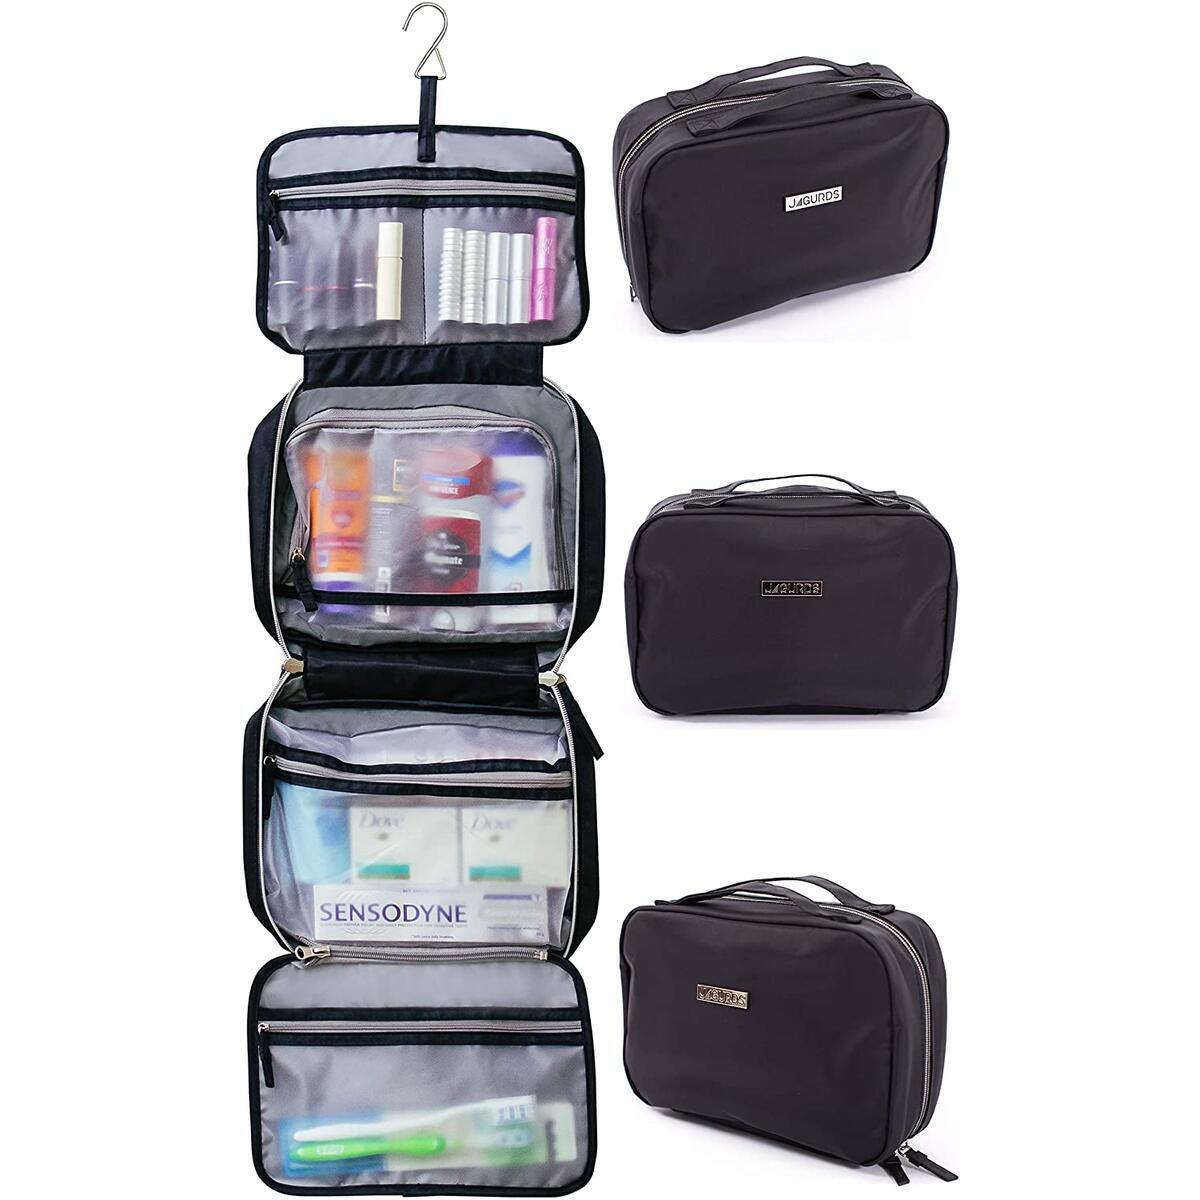 Jagurds Hanging Travel Toiletry Bag for Men, Women and Kids